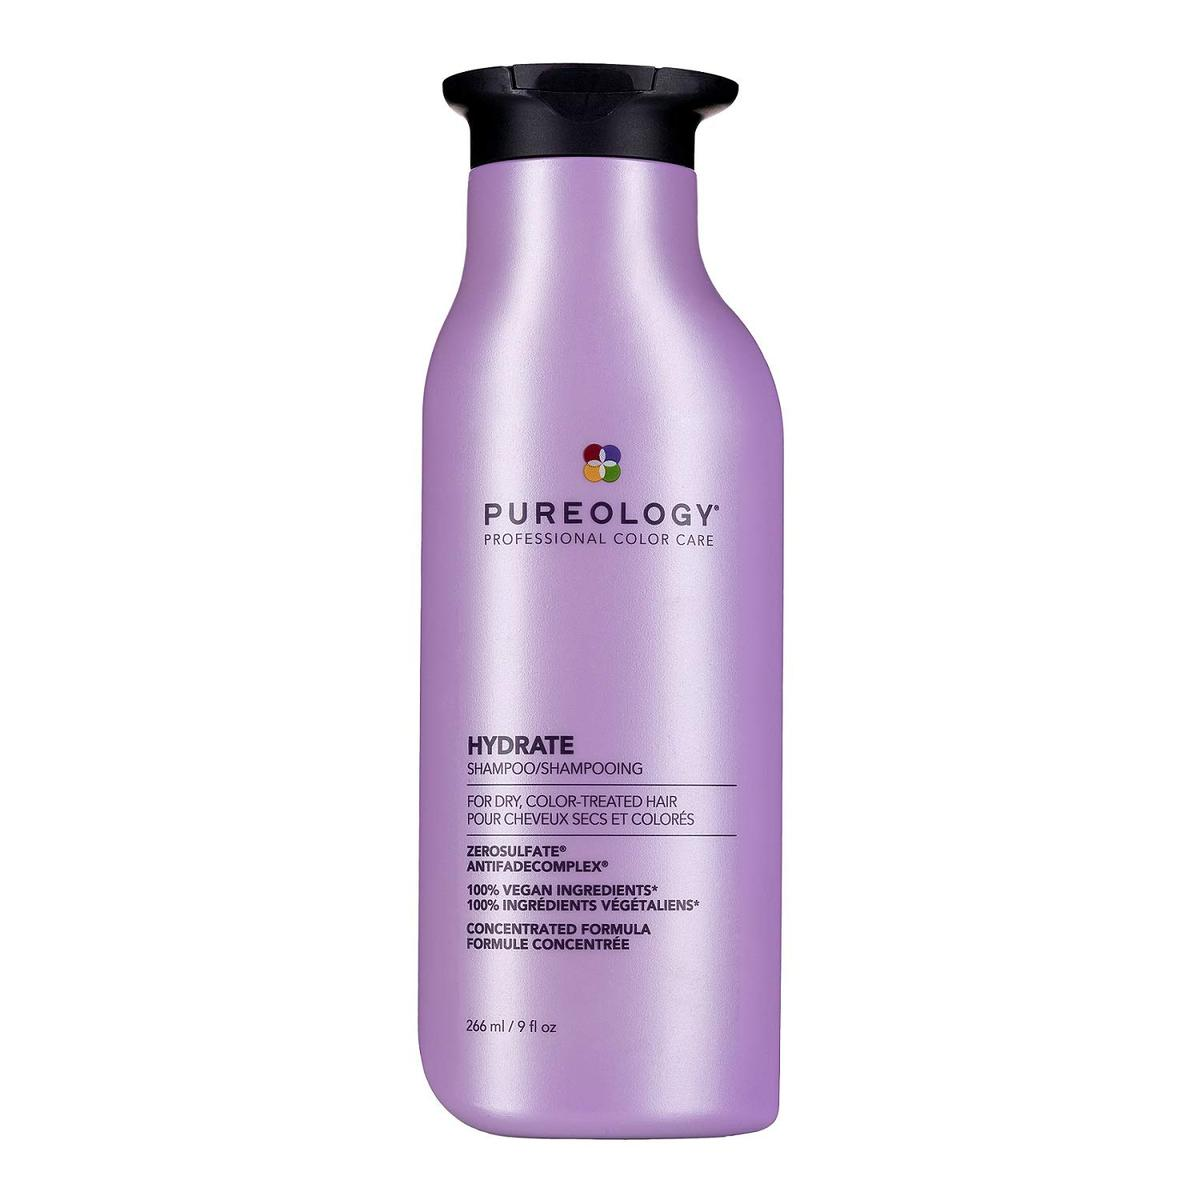 Pureology Shampoo & Conditioner Deal